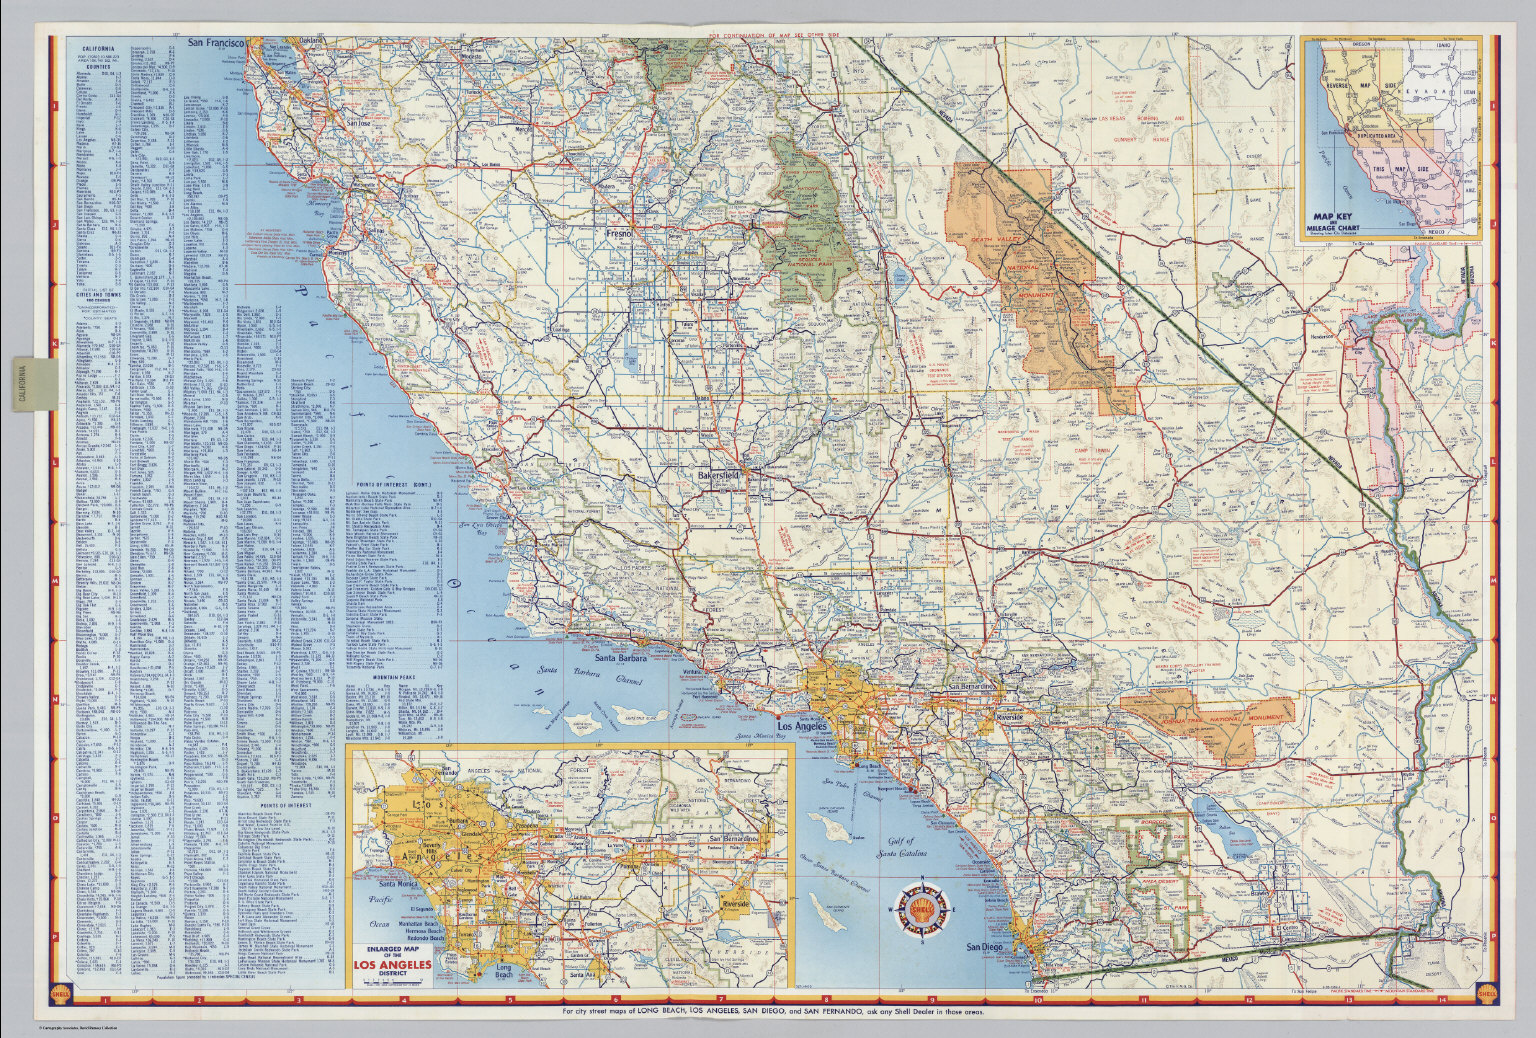 It's just a picture of Refreshing Printable Map of Southern California